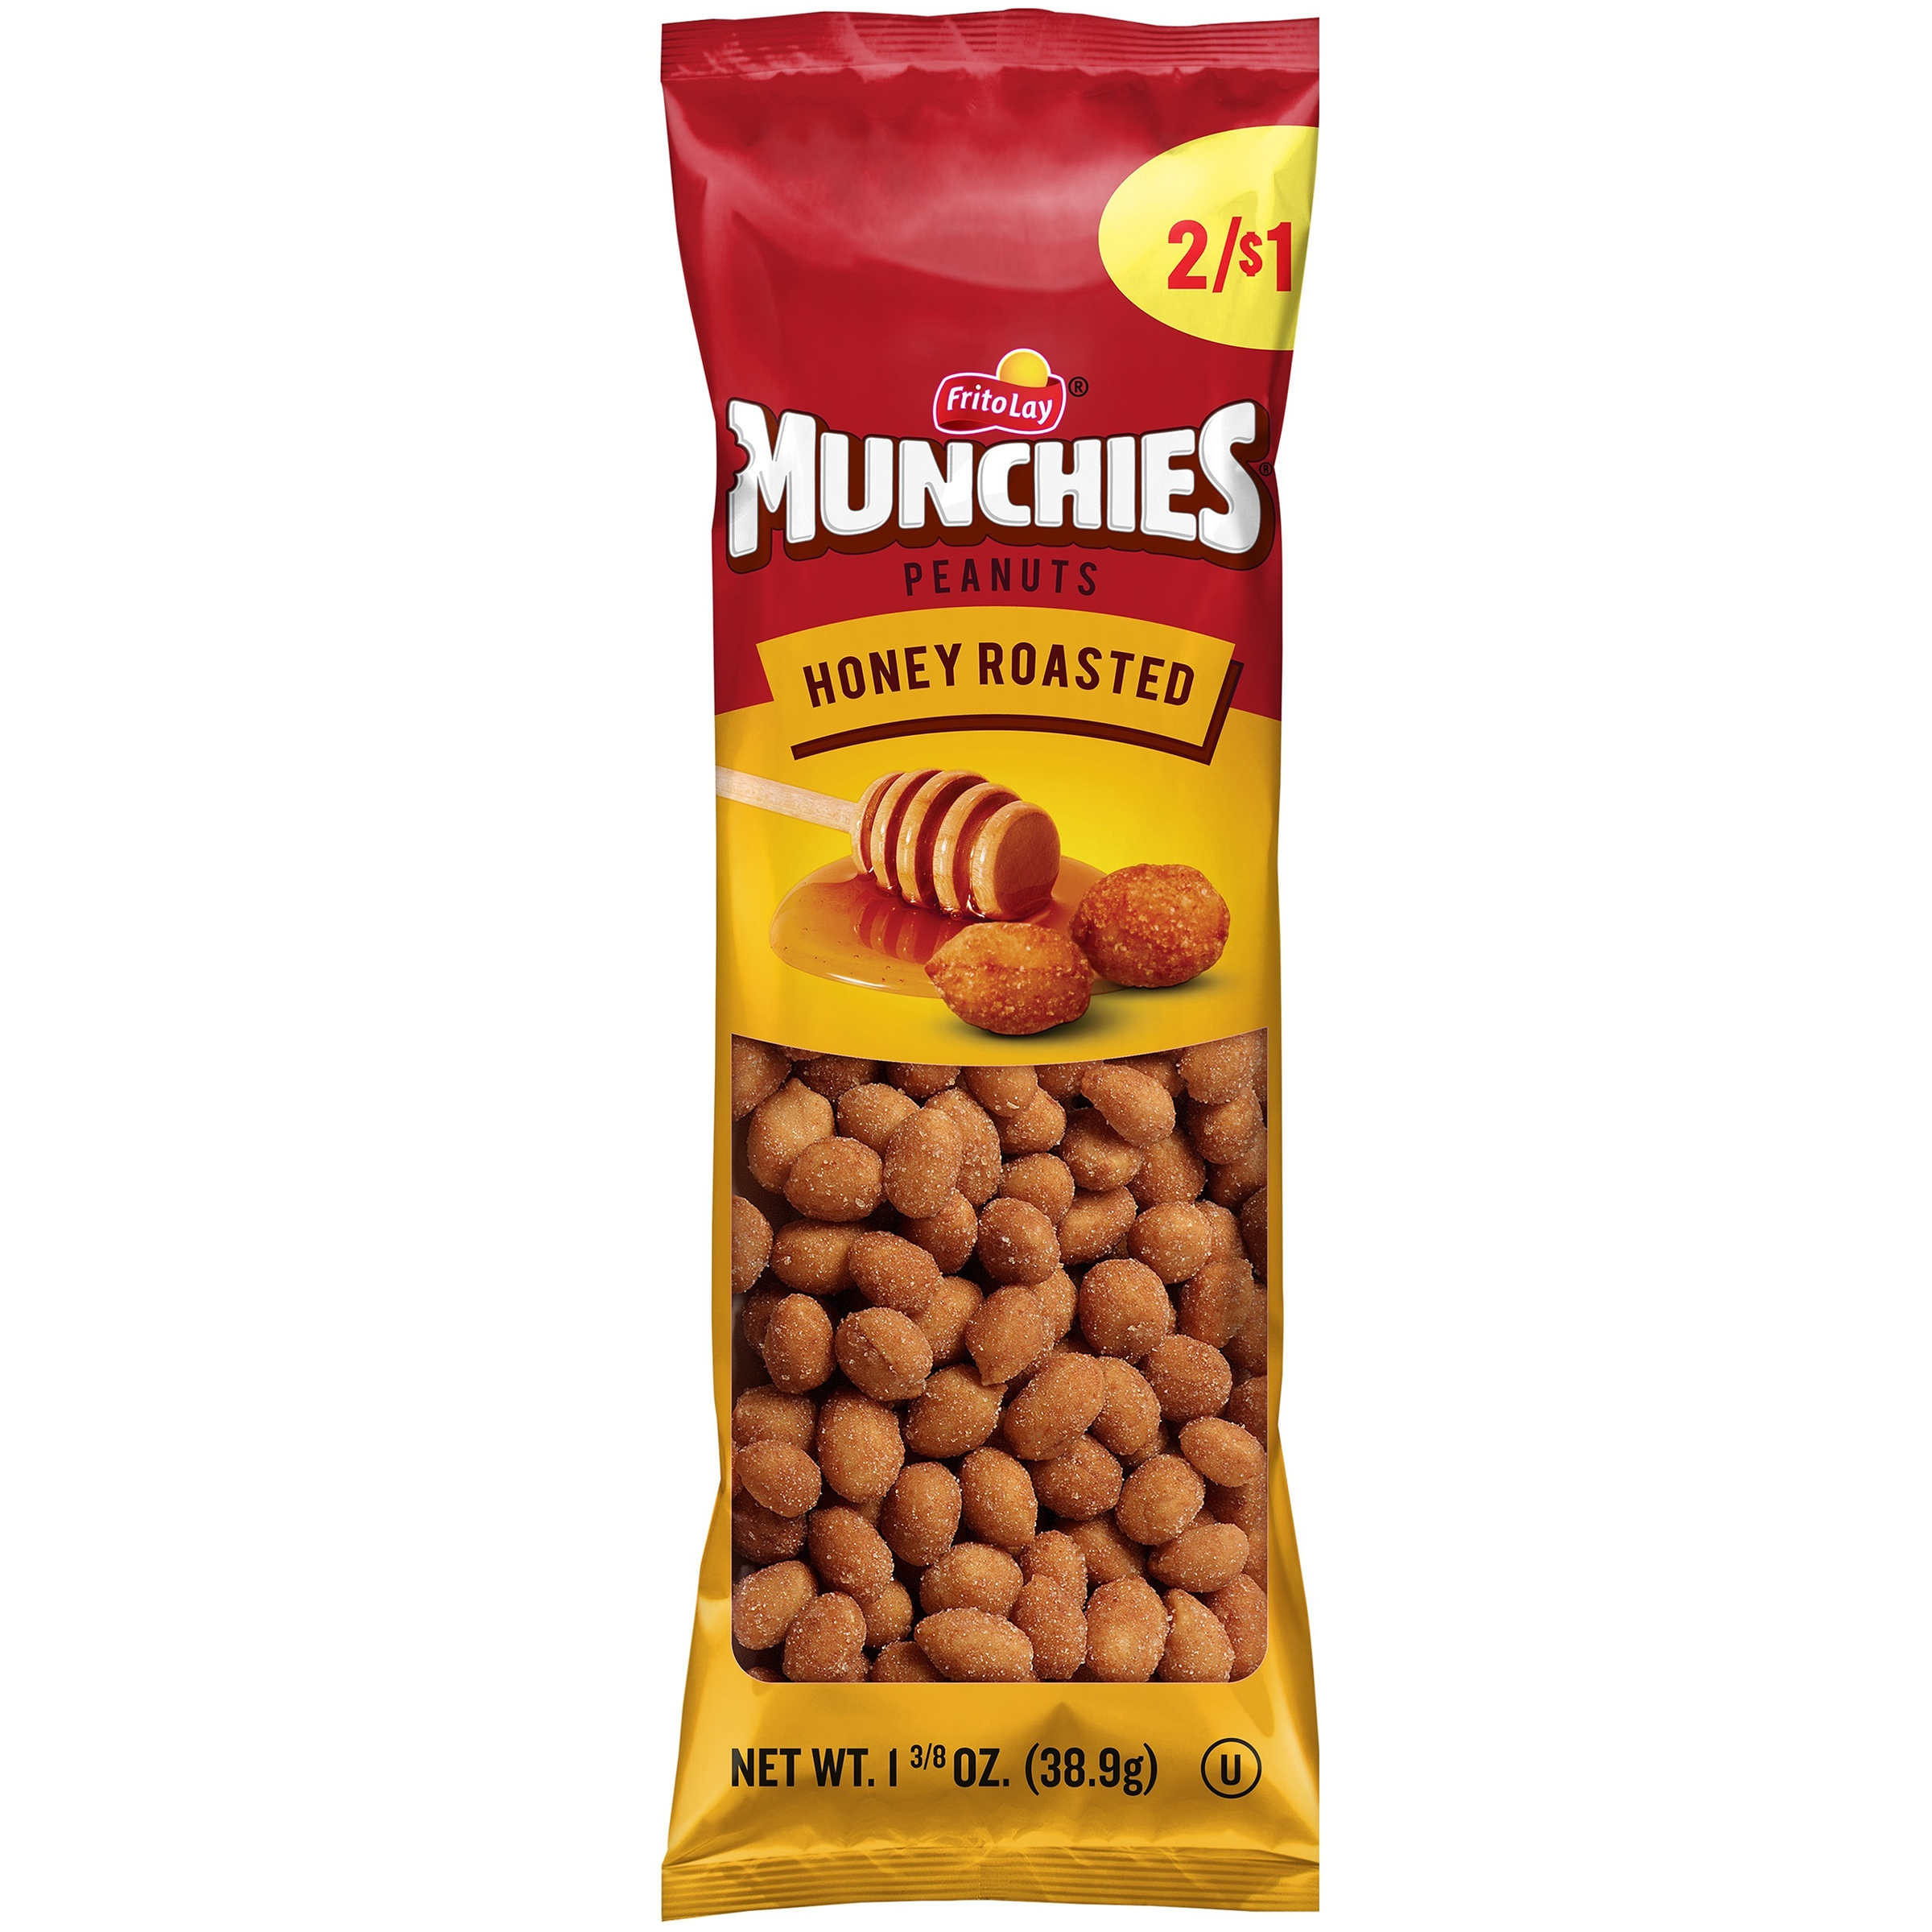 Munchies Honey Roasted Peanuts 1.38 oz. Bag